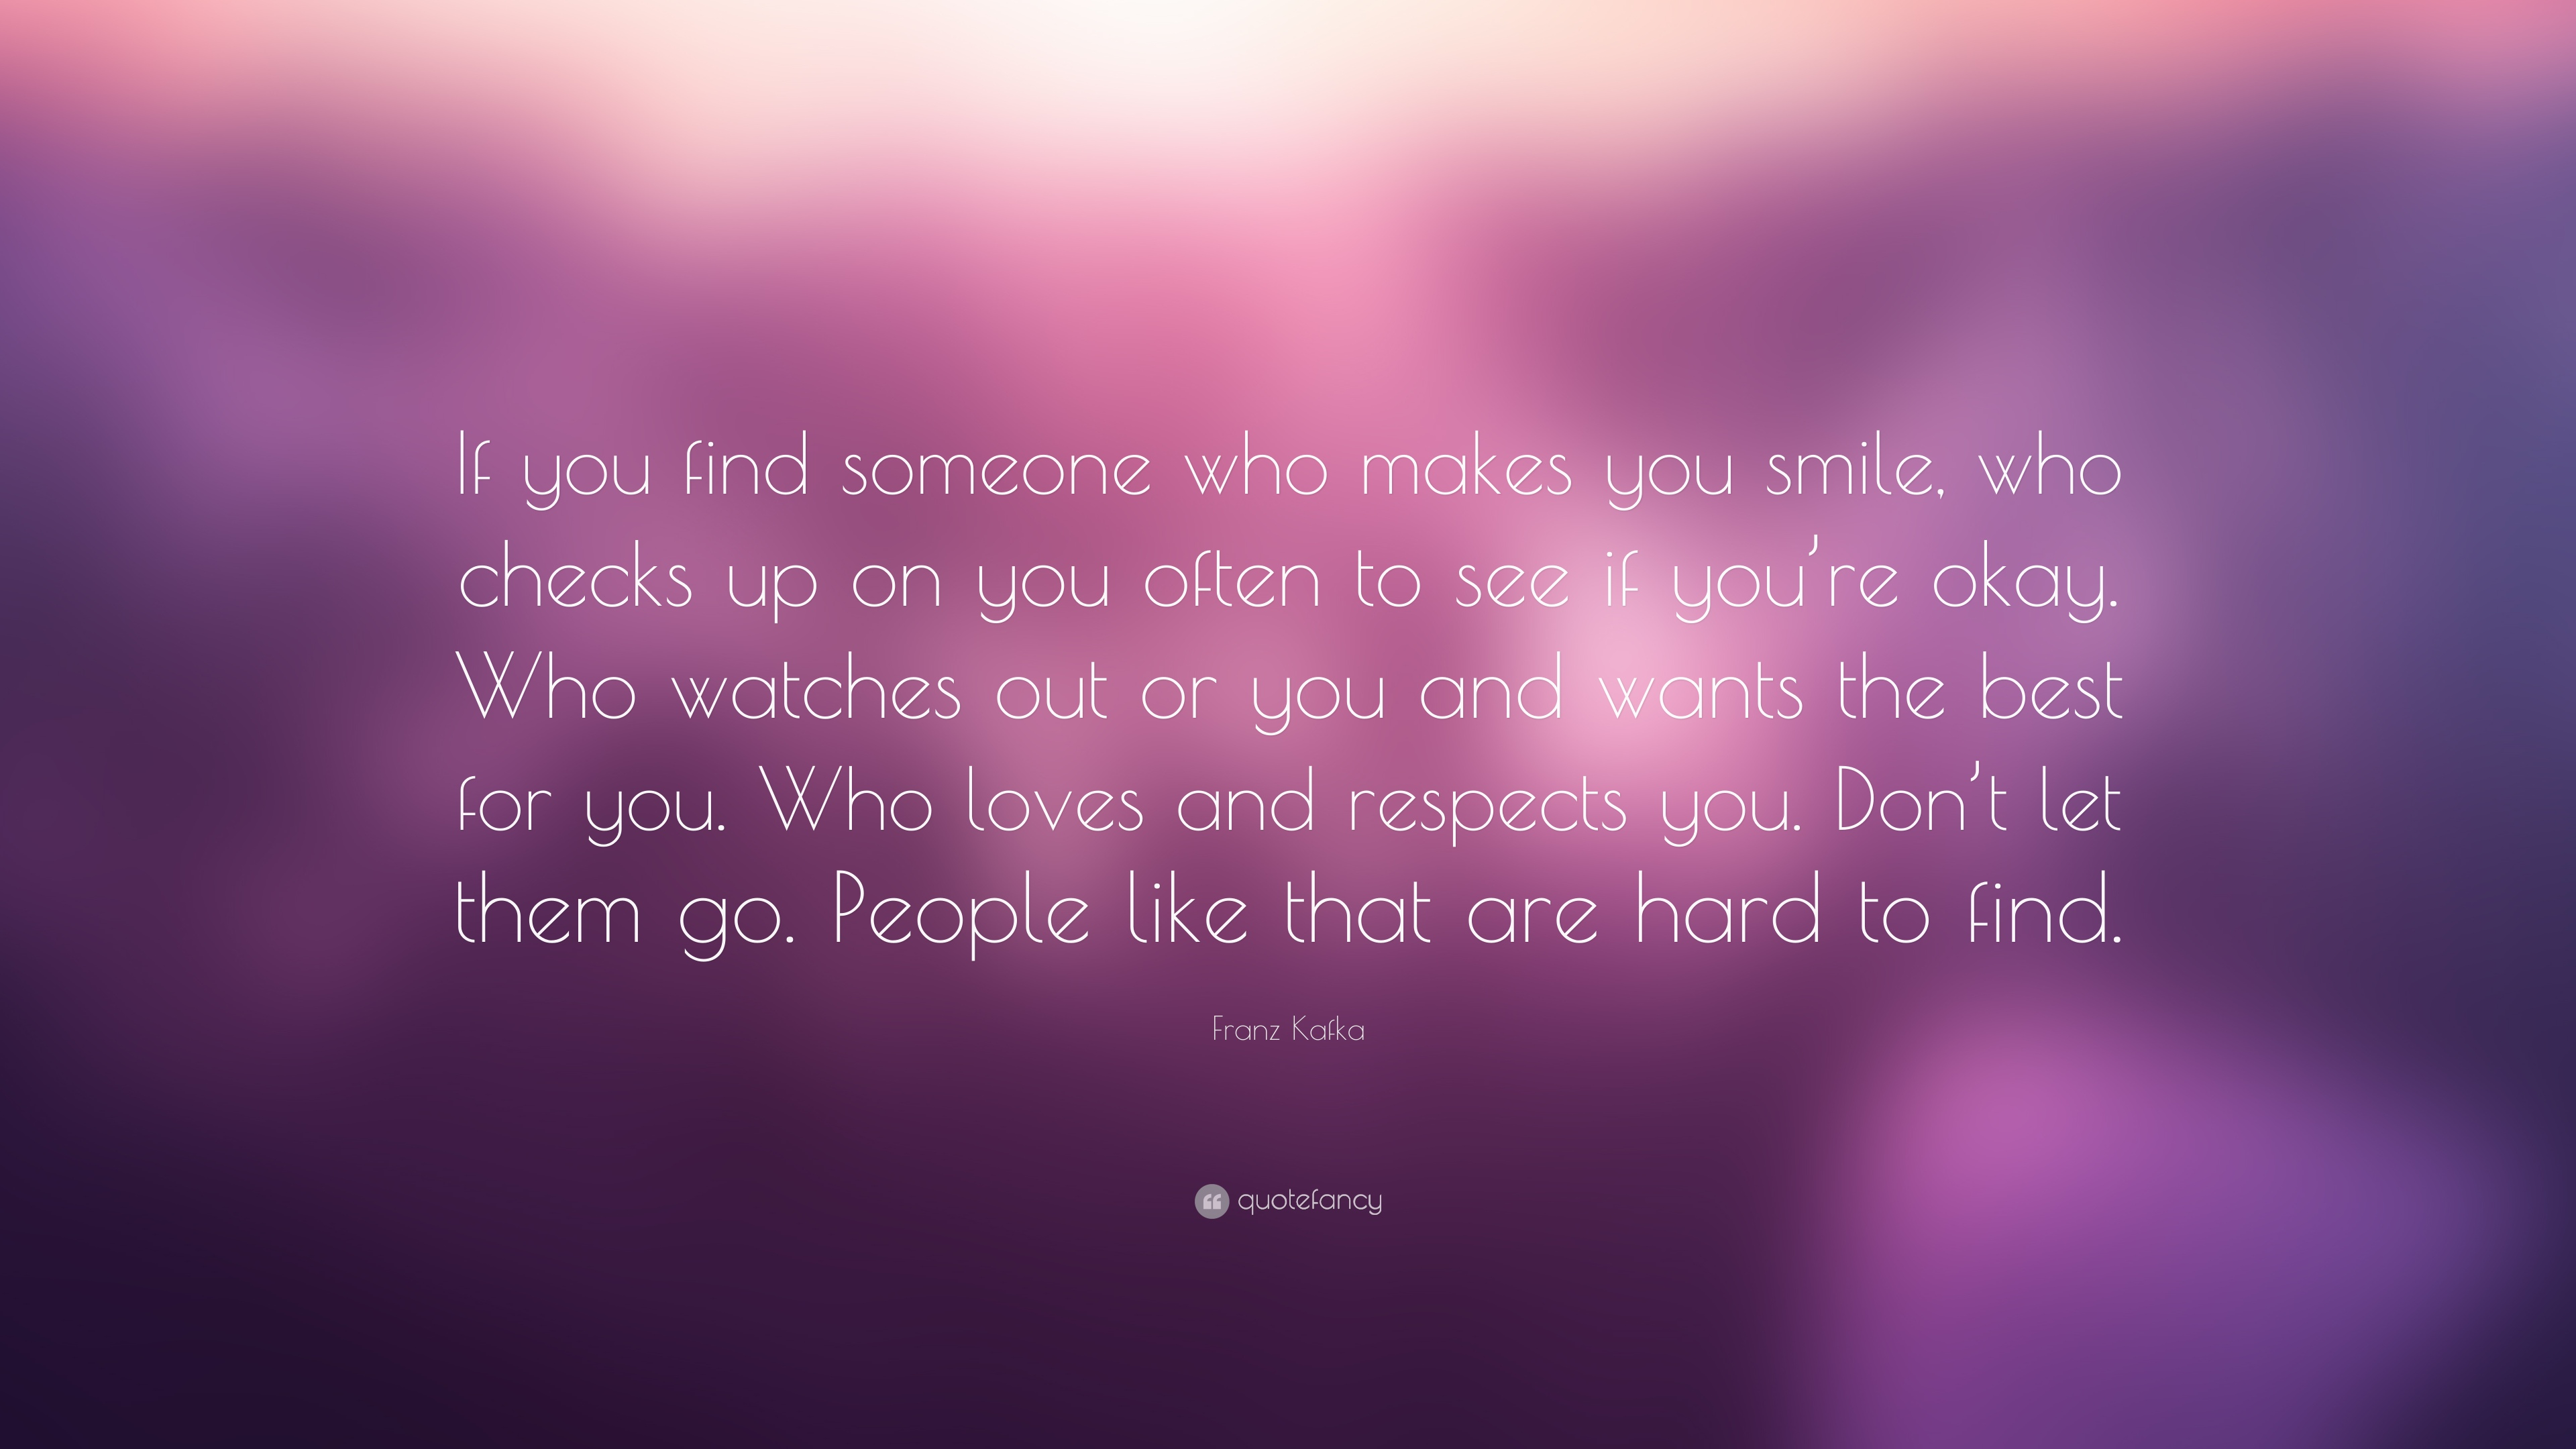 Franz Kafka Quote If You Find Someone Who Makes You Smile Who Checks Up On You Often To See